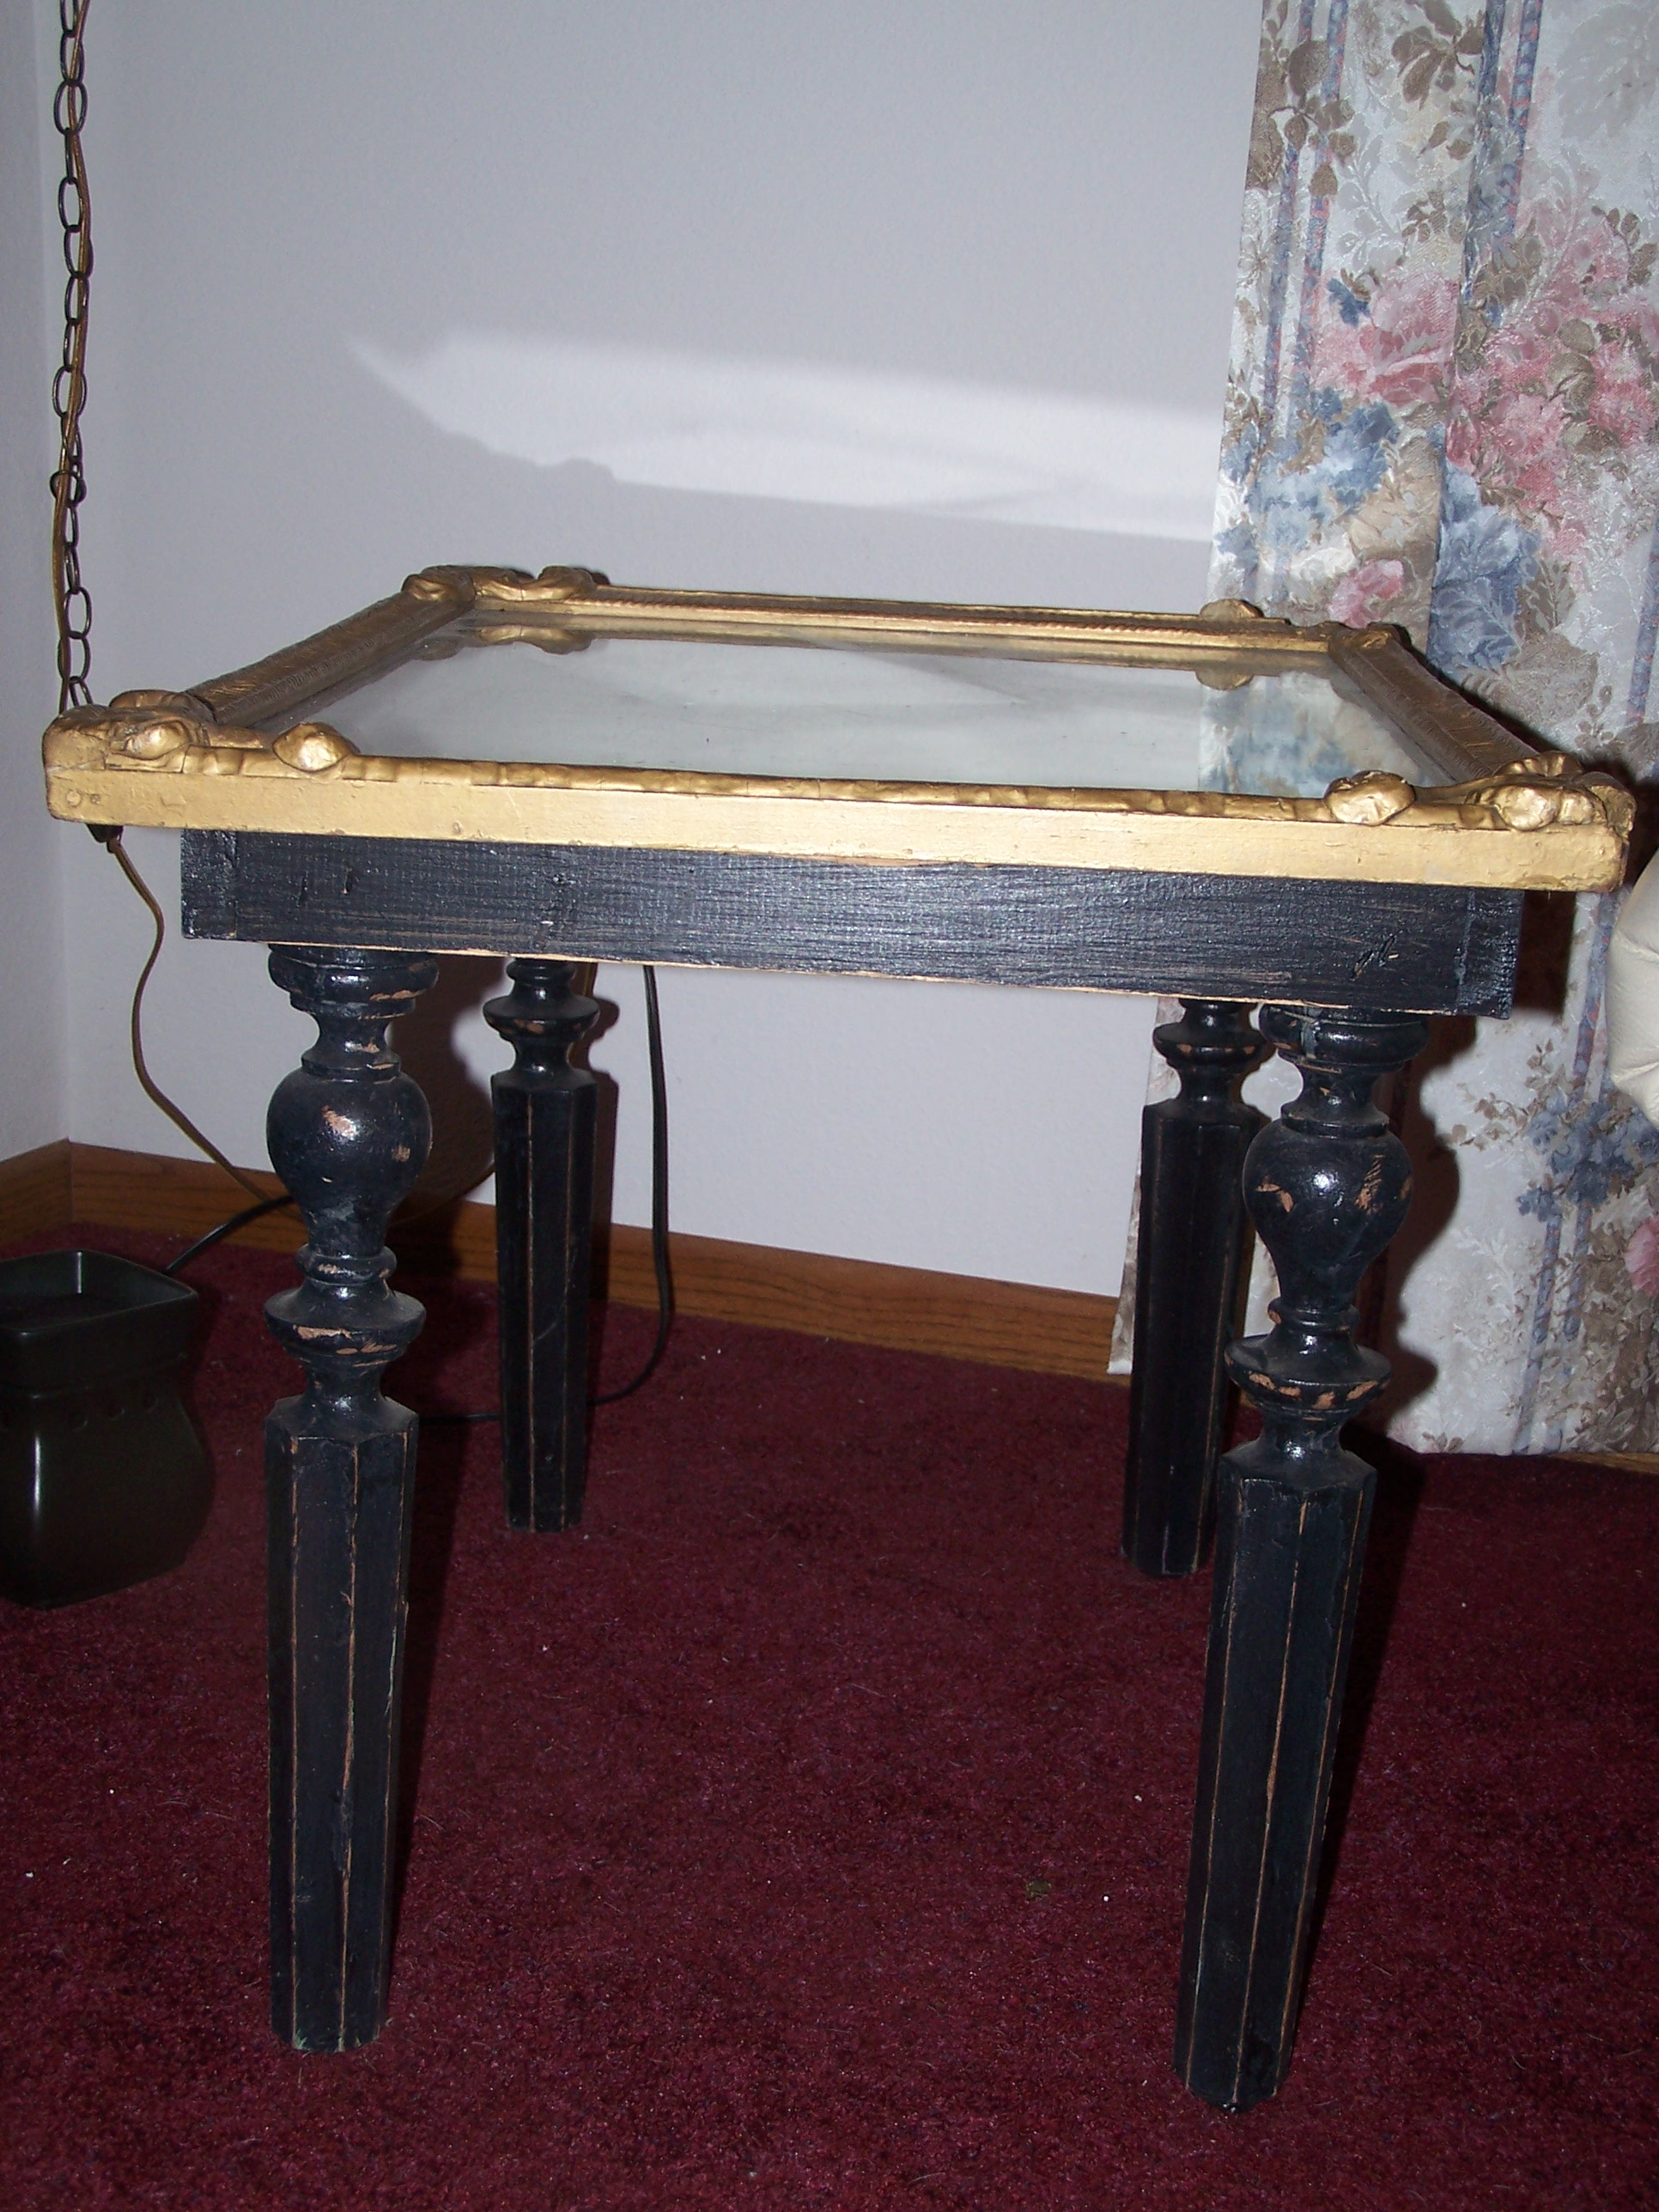 This is an old table with an antique frame used for the top.  We use it as our living room coffee table.  It has its dings and scratches, but I think thats what makes it so unique.